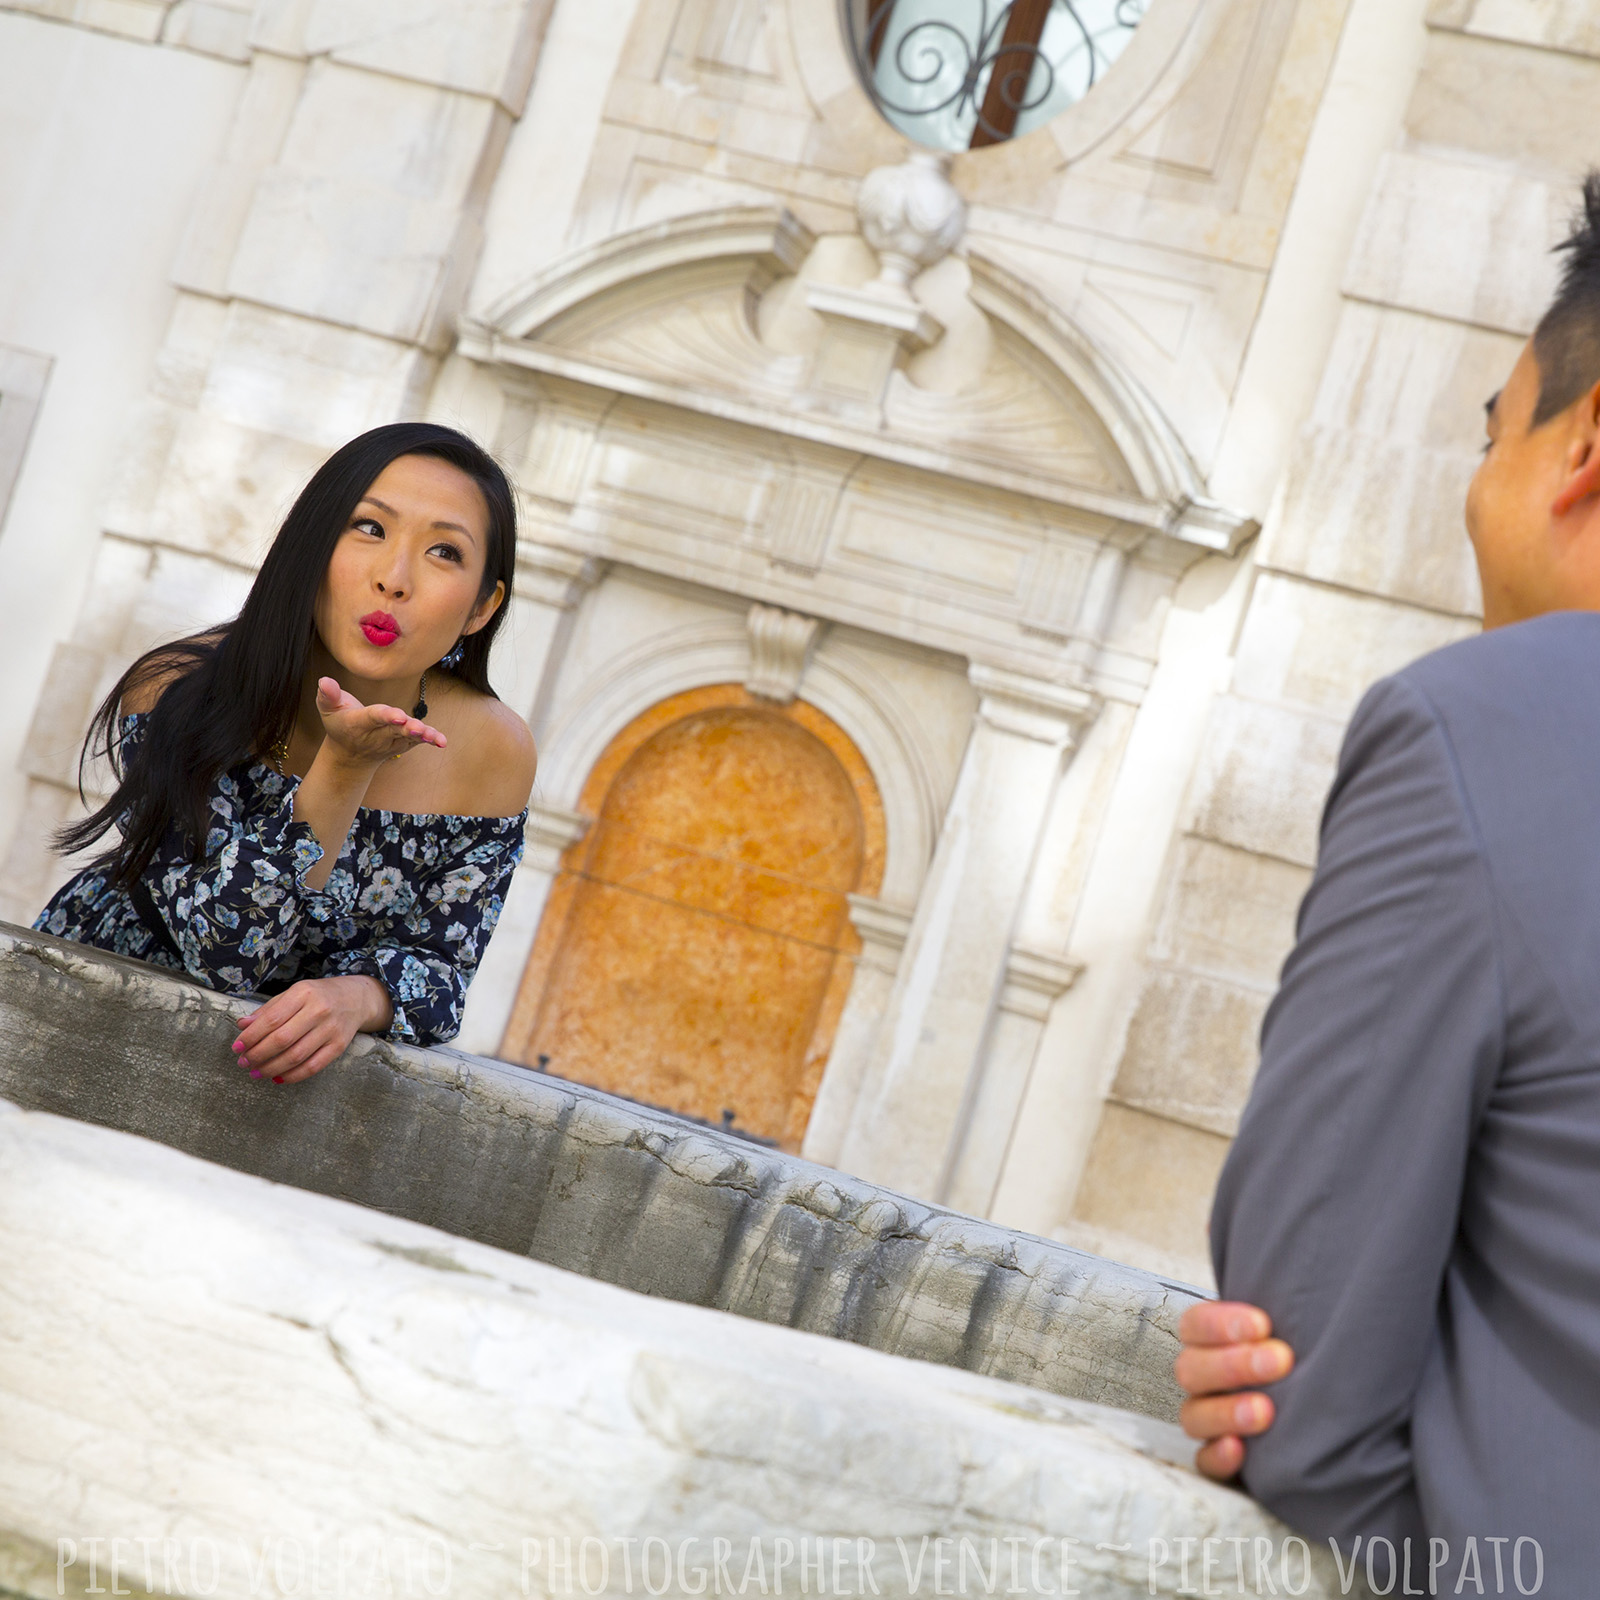 photographer-venice-romantic-couple-photo-session-tour-20170502_04